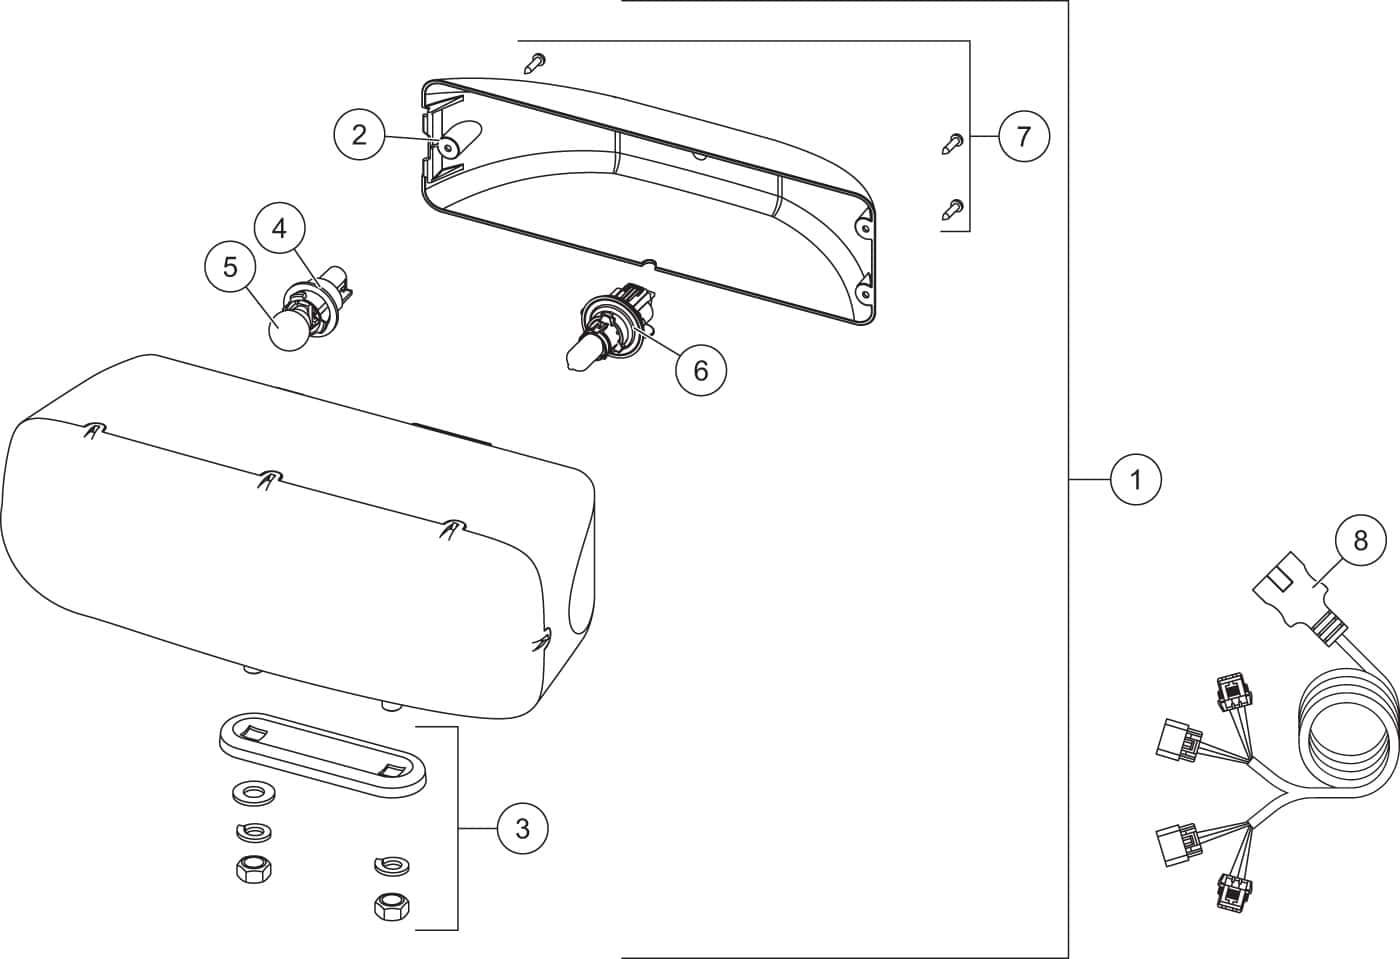 HDX Headlamp Kit Diagram